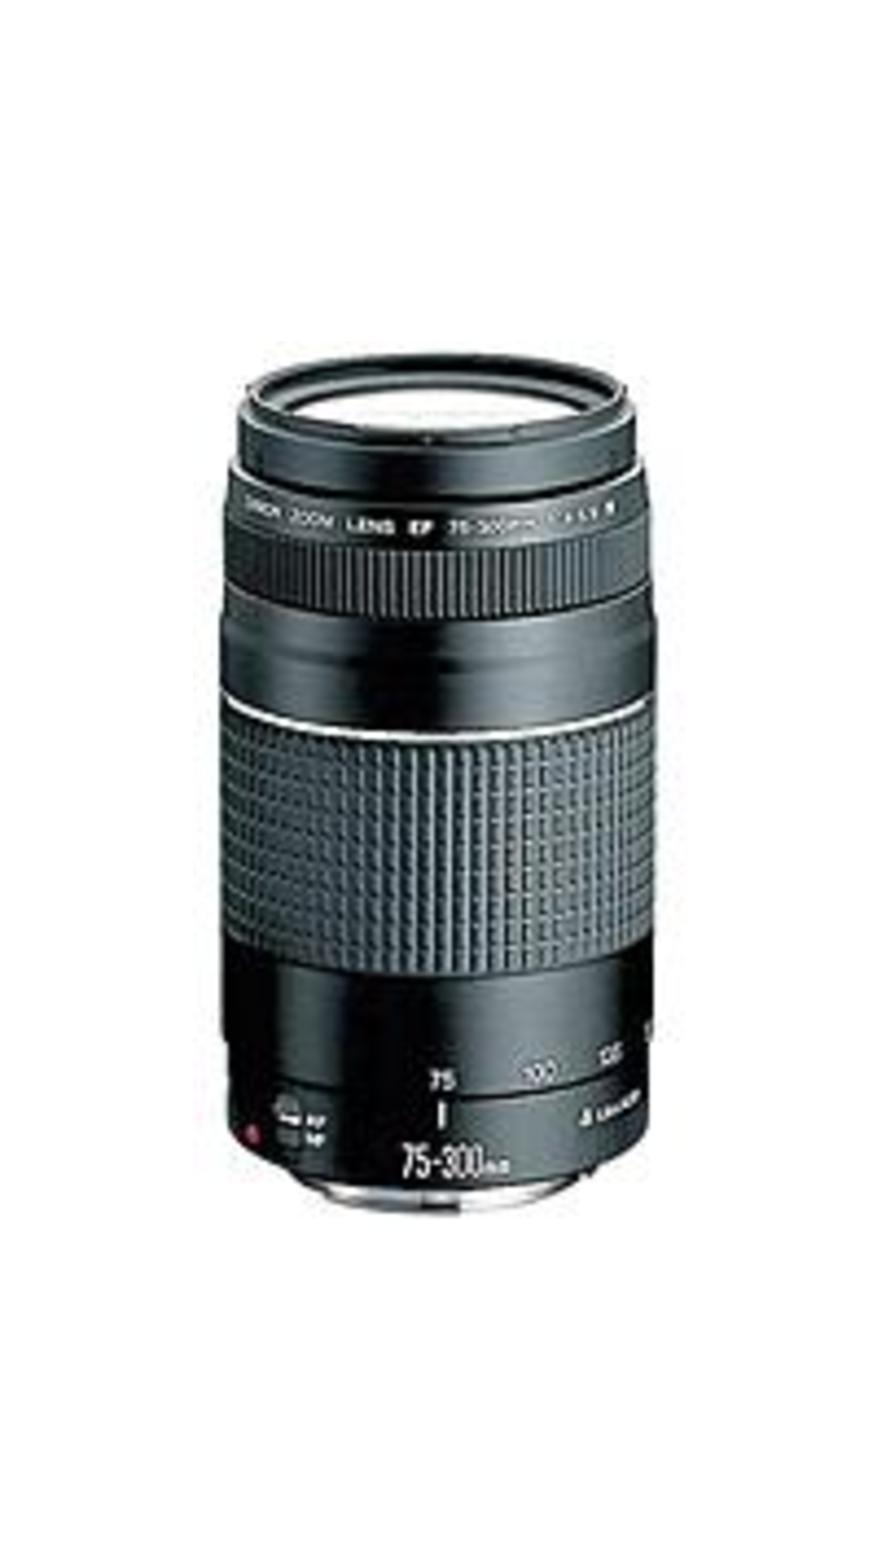 Canon 6473A003 EF 75-300mm f/4-5.6 III Lens Telephoto Zoom Lens